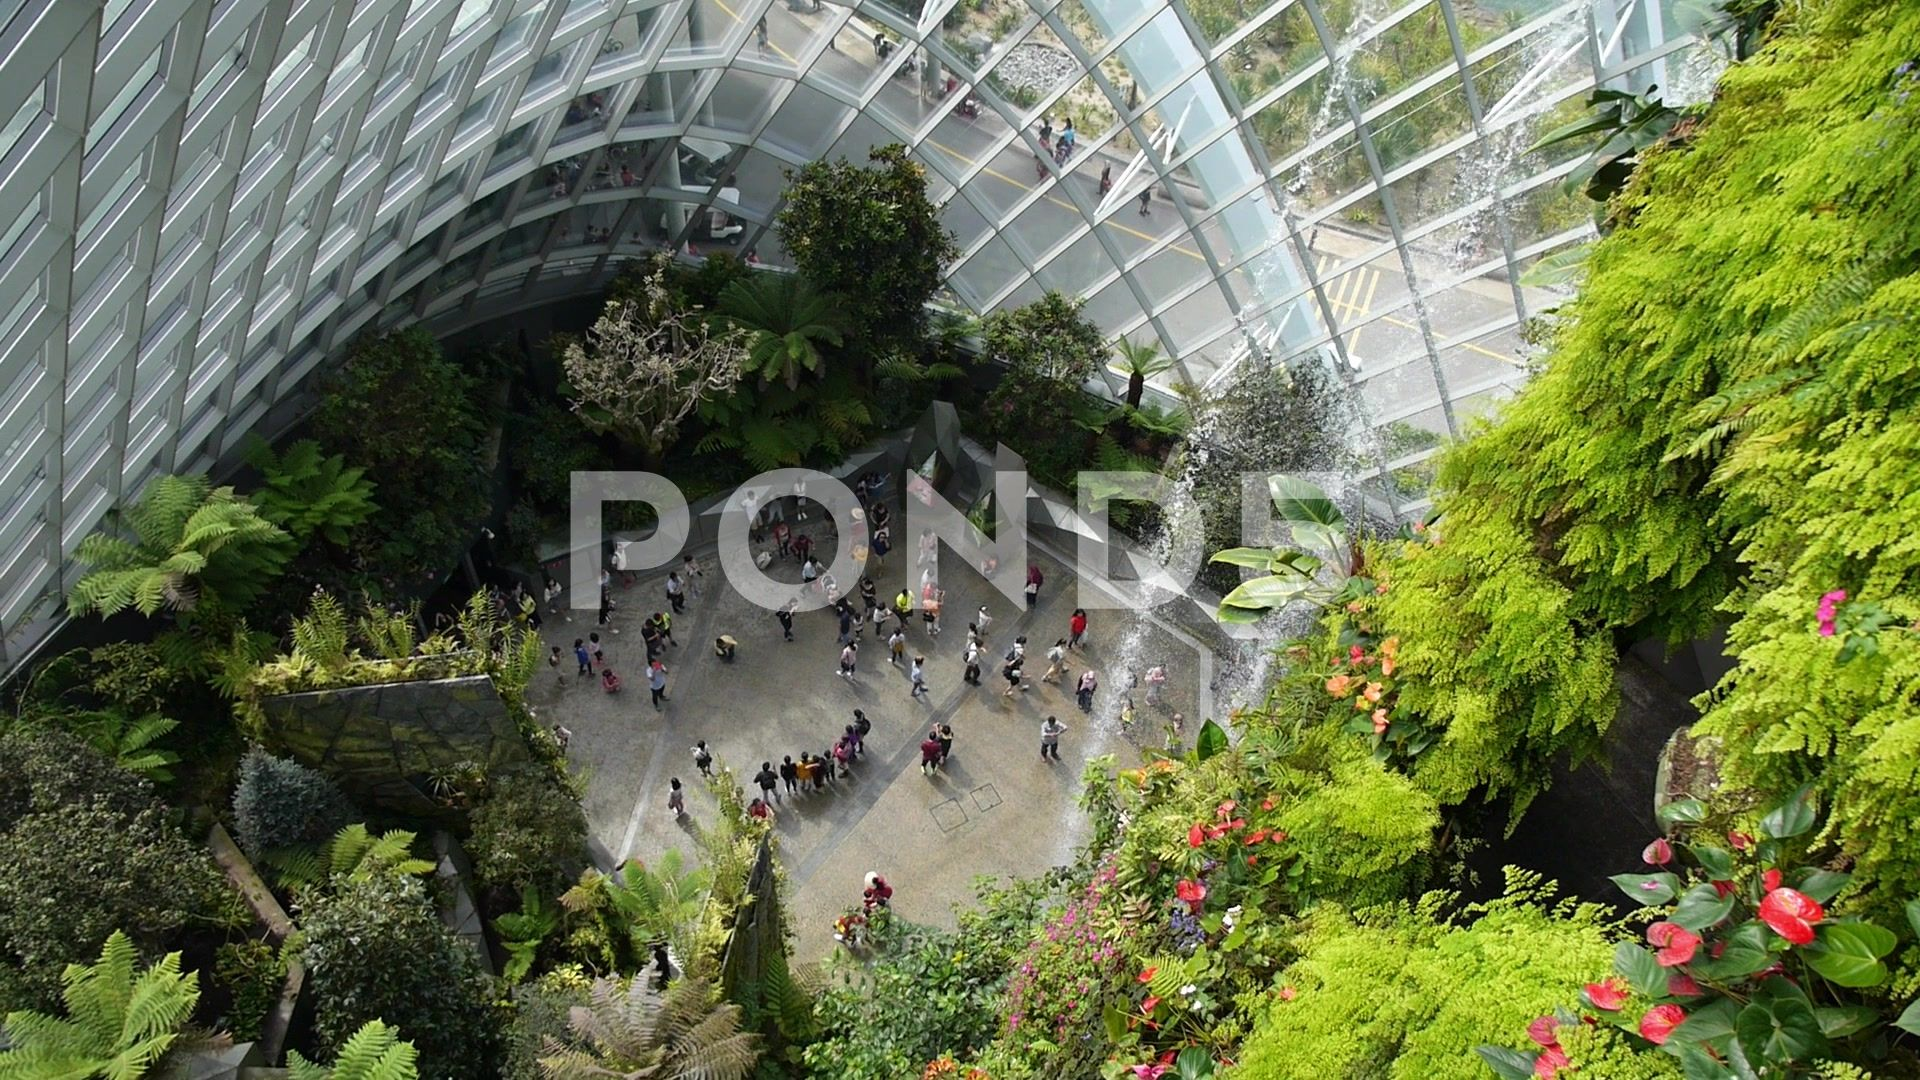 3942d746dae2b4ef88812bbe1d24d397 - Gardens By The Bay Valentine's Day